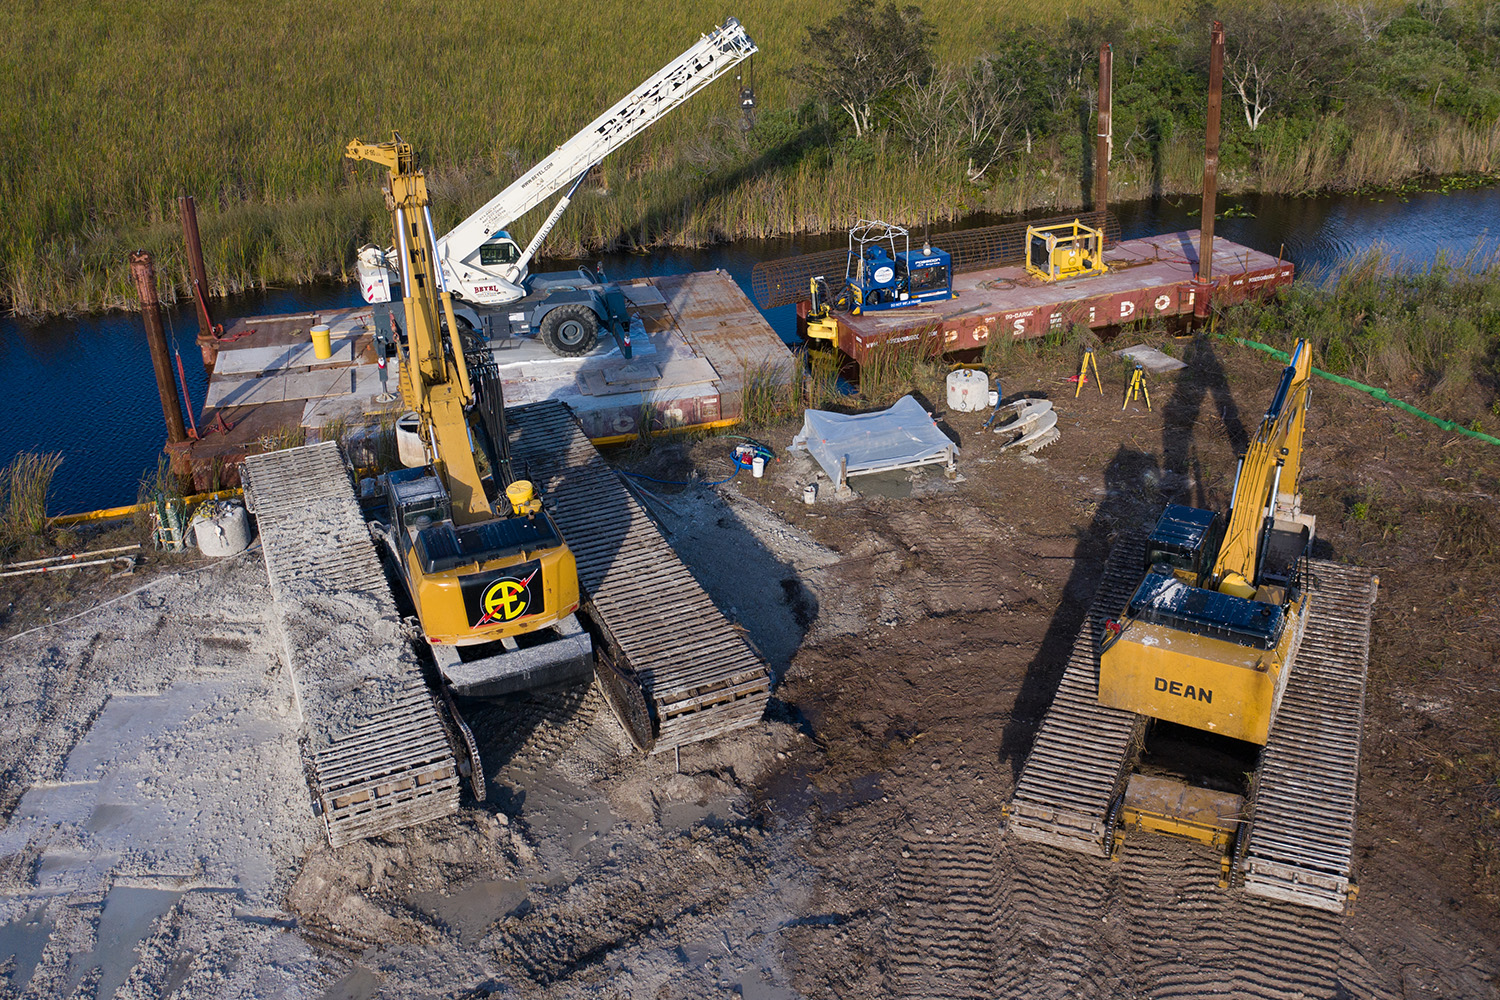 aldridge-electric-electrical-contractor-construction-foundation-foundations-drilling-nationwide-transmission-lines-midwest-chicago.jpg